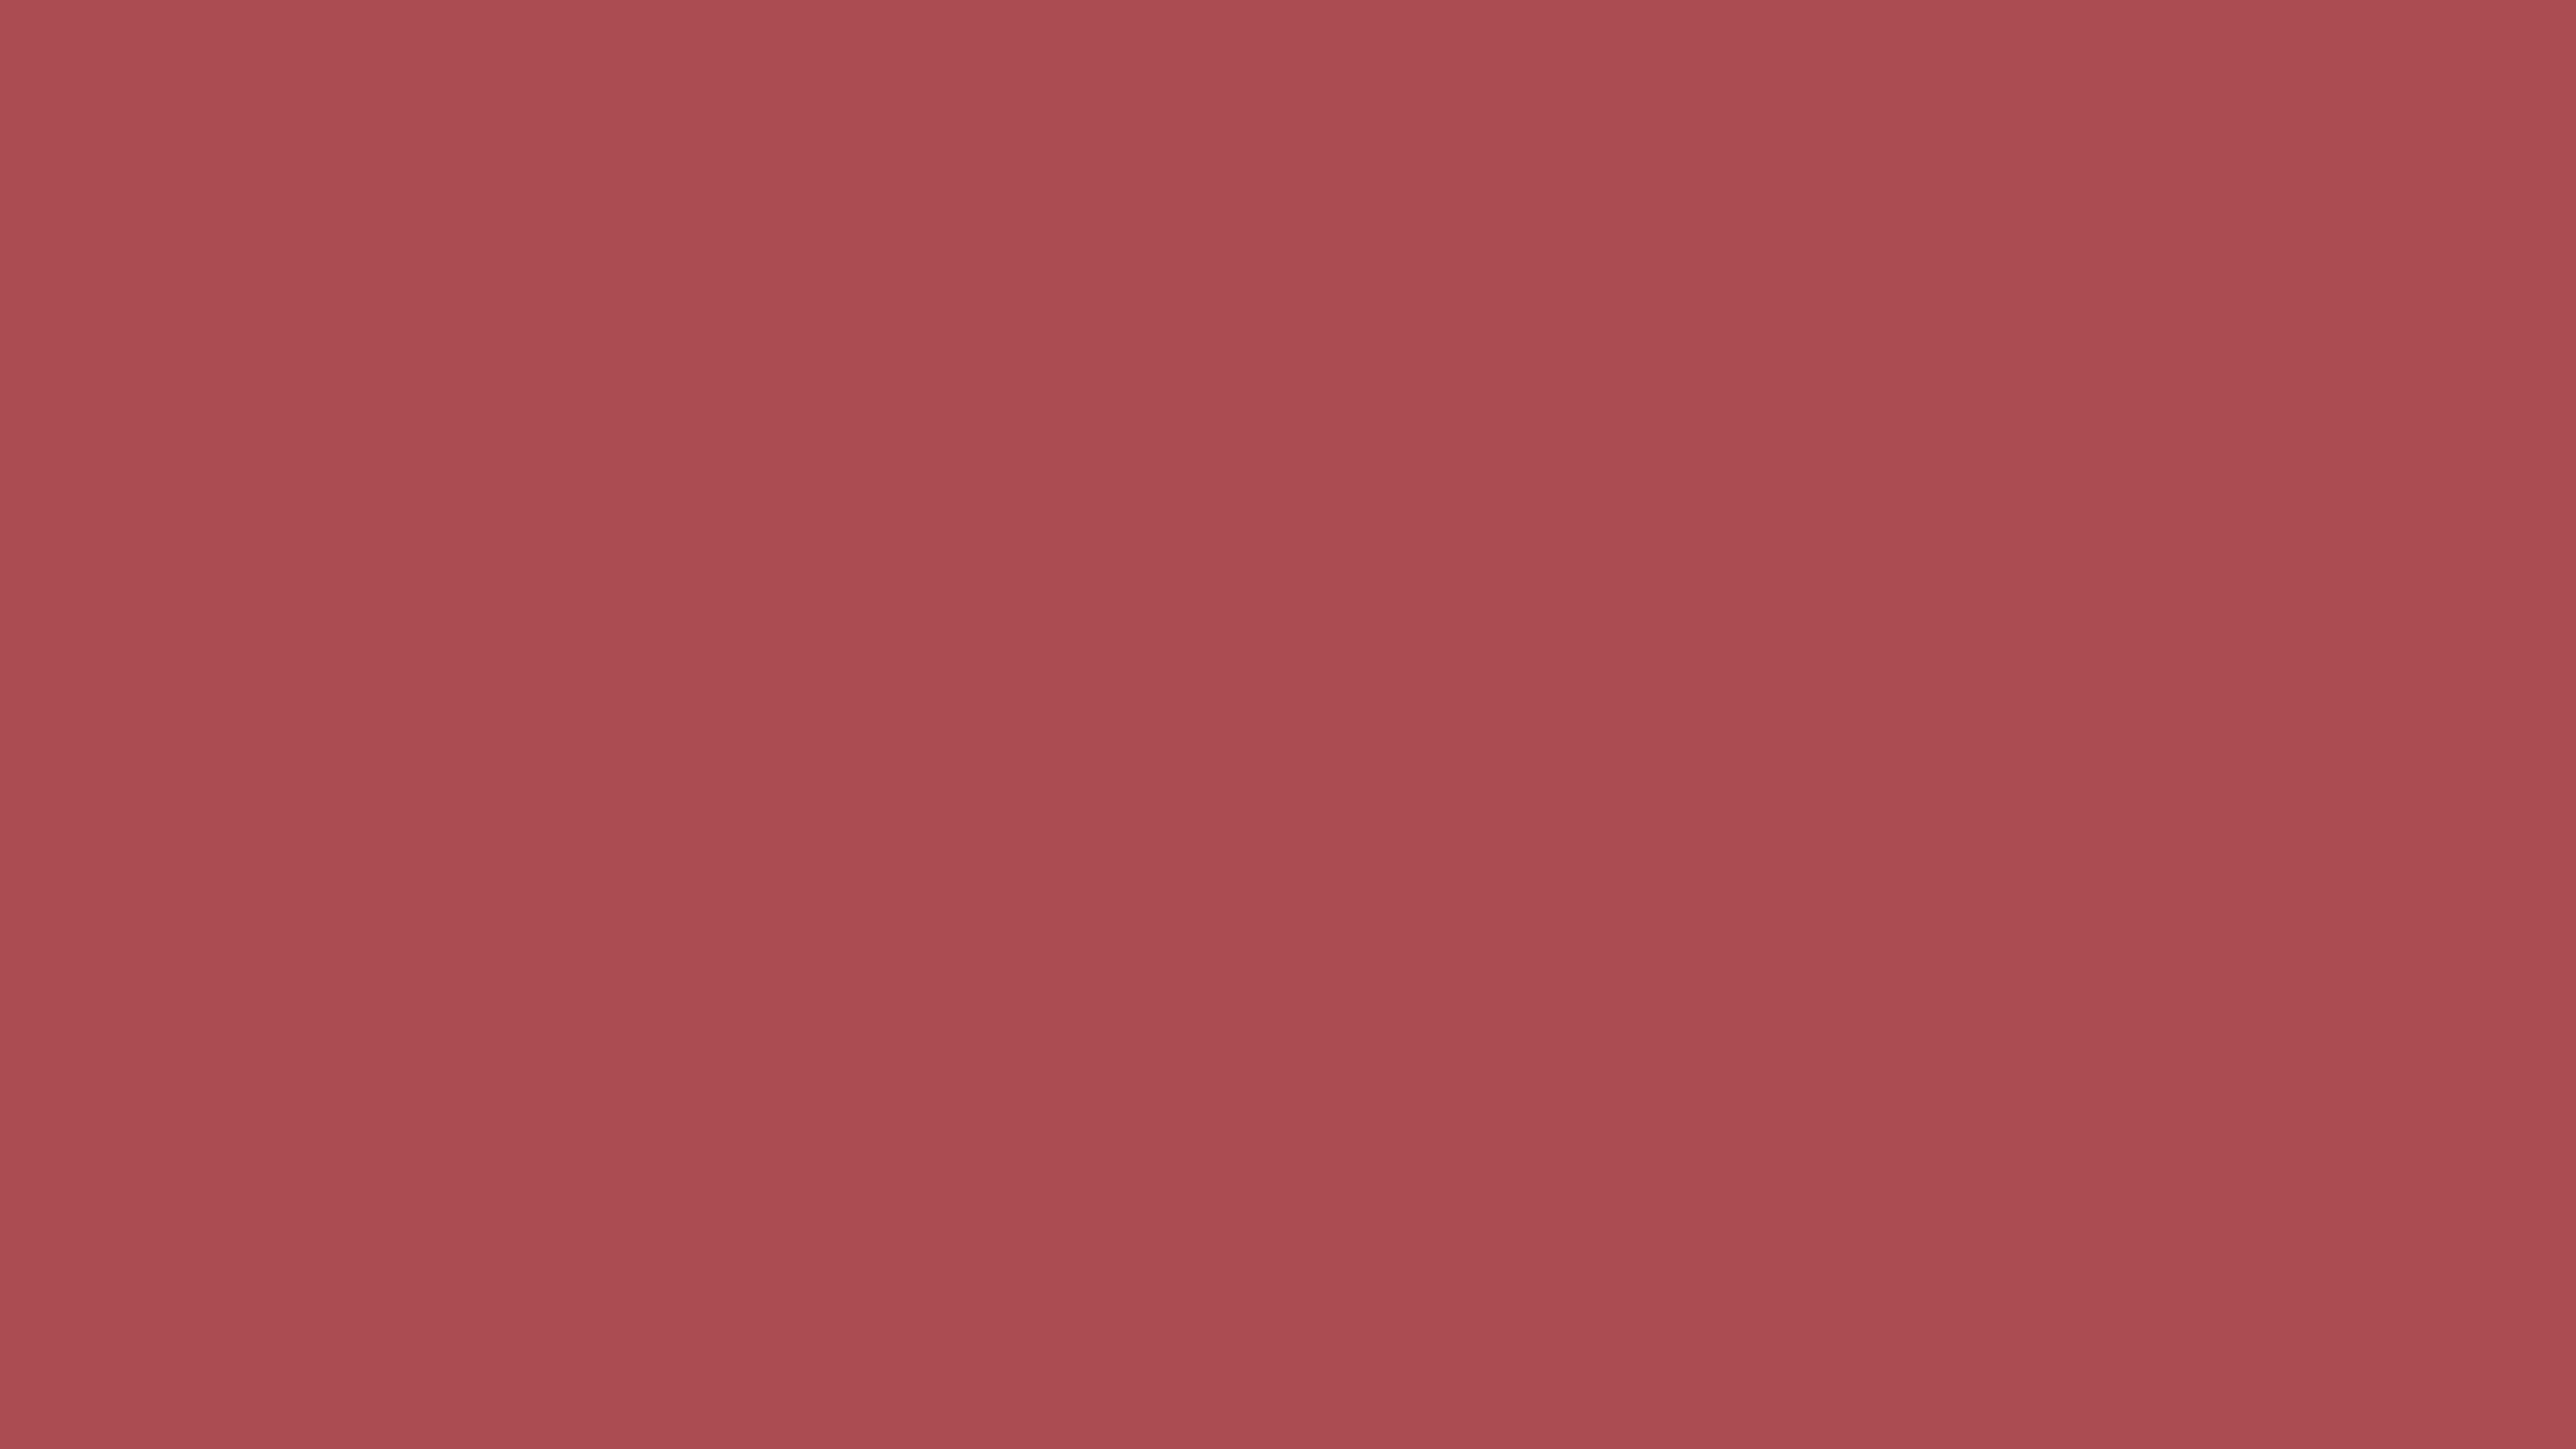 3840x2160 English Red Solid Color Background